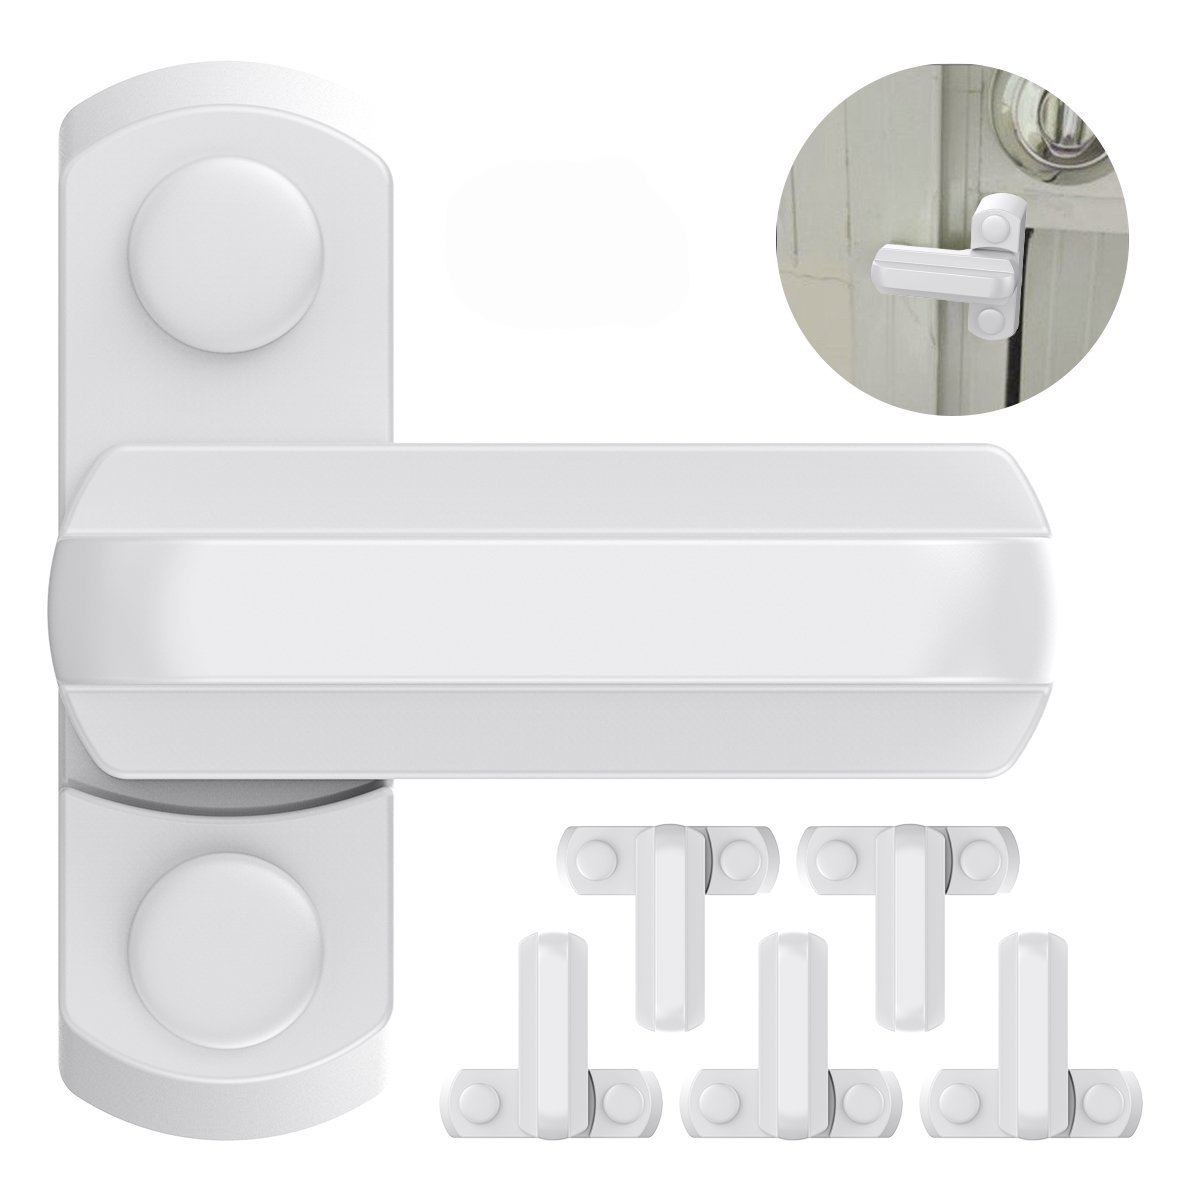 New 6pcs Safe Window Lock Sash Jammer T Shape Zinc Alloy Window Door Security Sash Lock Handle Latch Child Protection WhiteNew 6pcs Safe Window Lock Sash Jammer T Shape Zinc Alloy Window Door Security Sash Lock Handle Latch Child Protection White